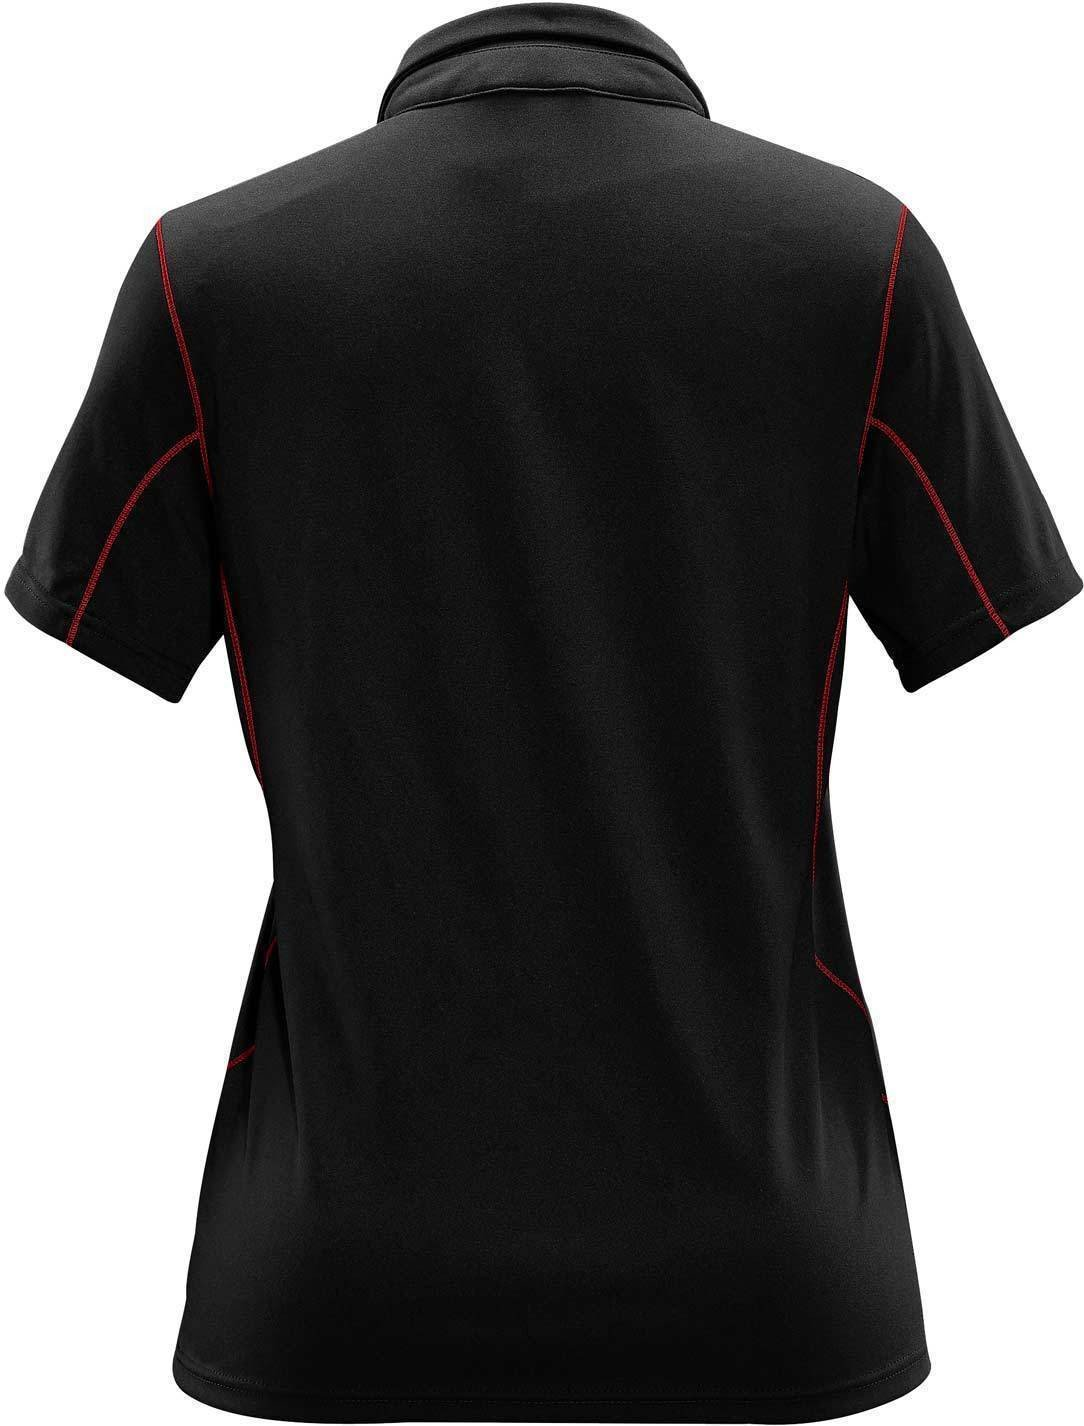 Black/Bright Red - Back